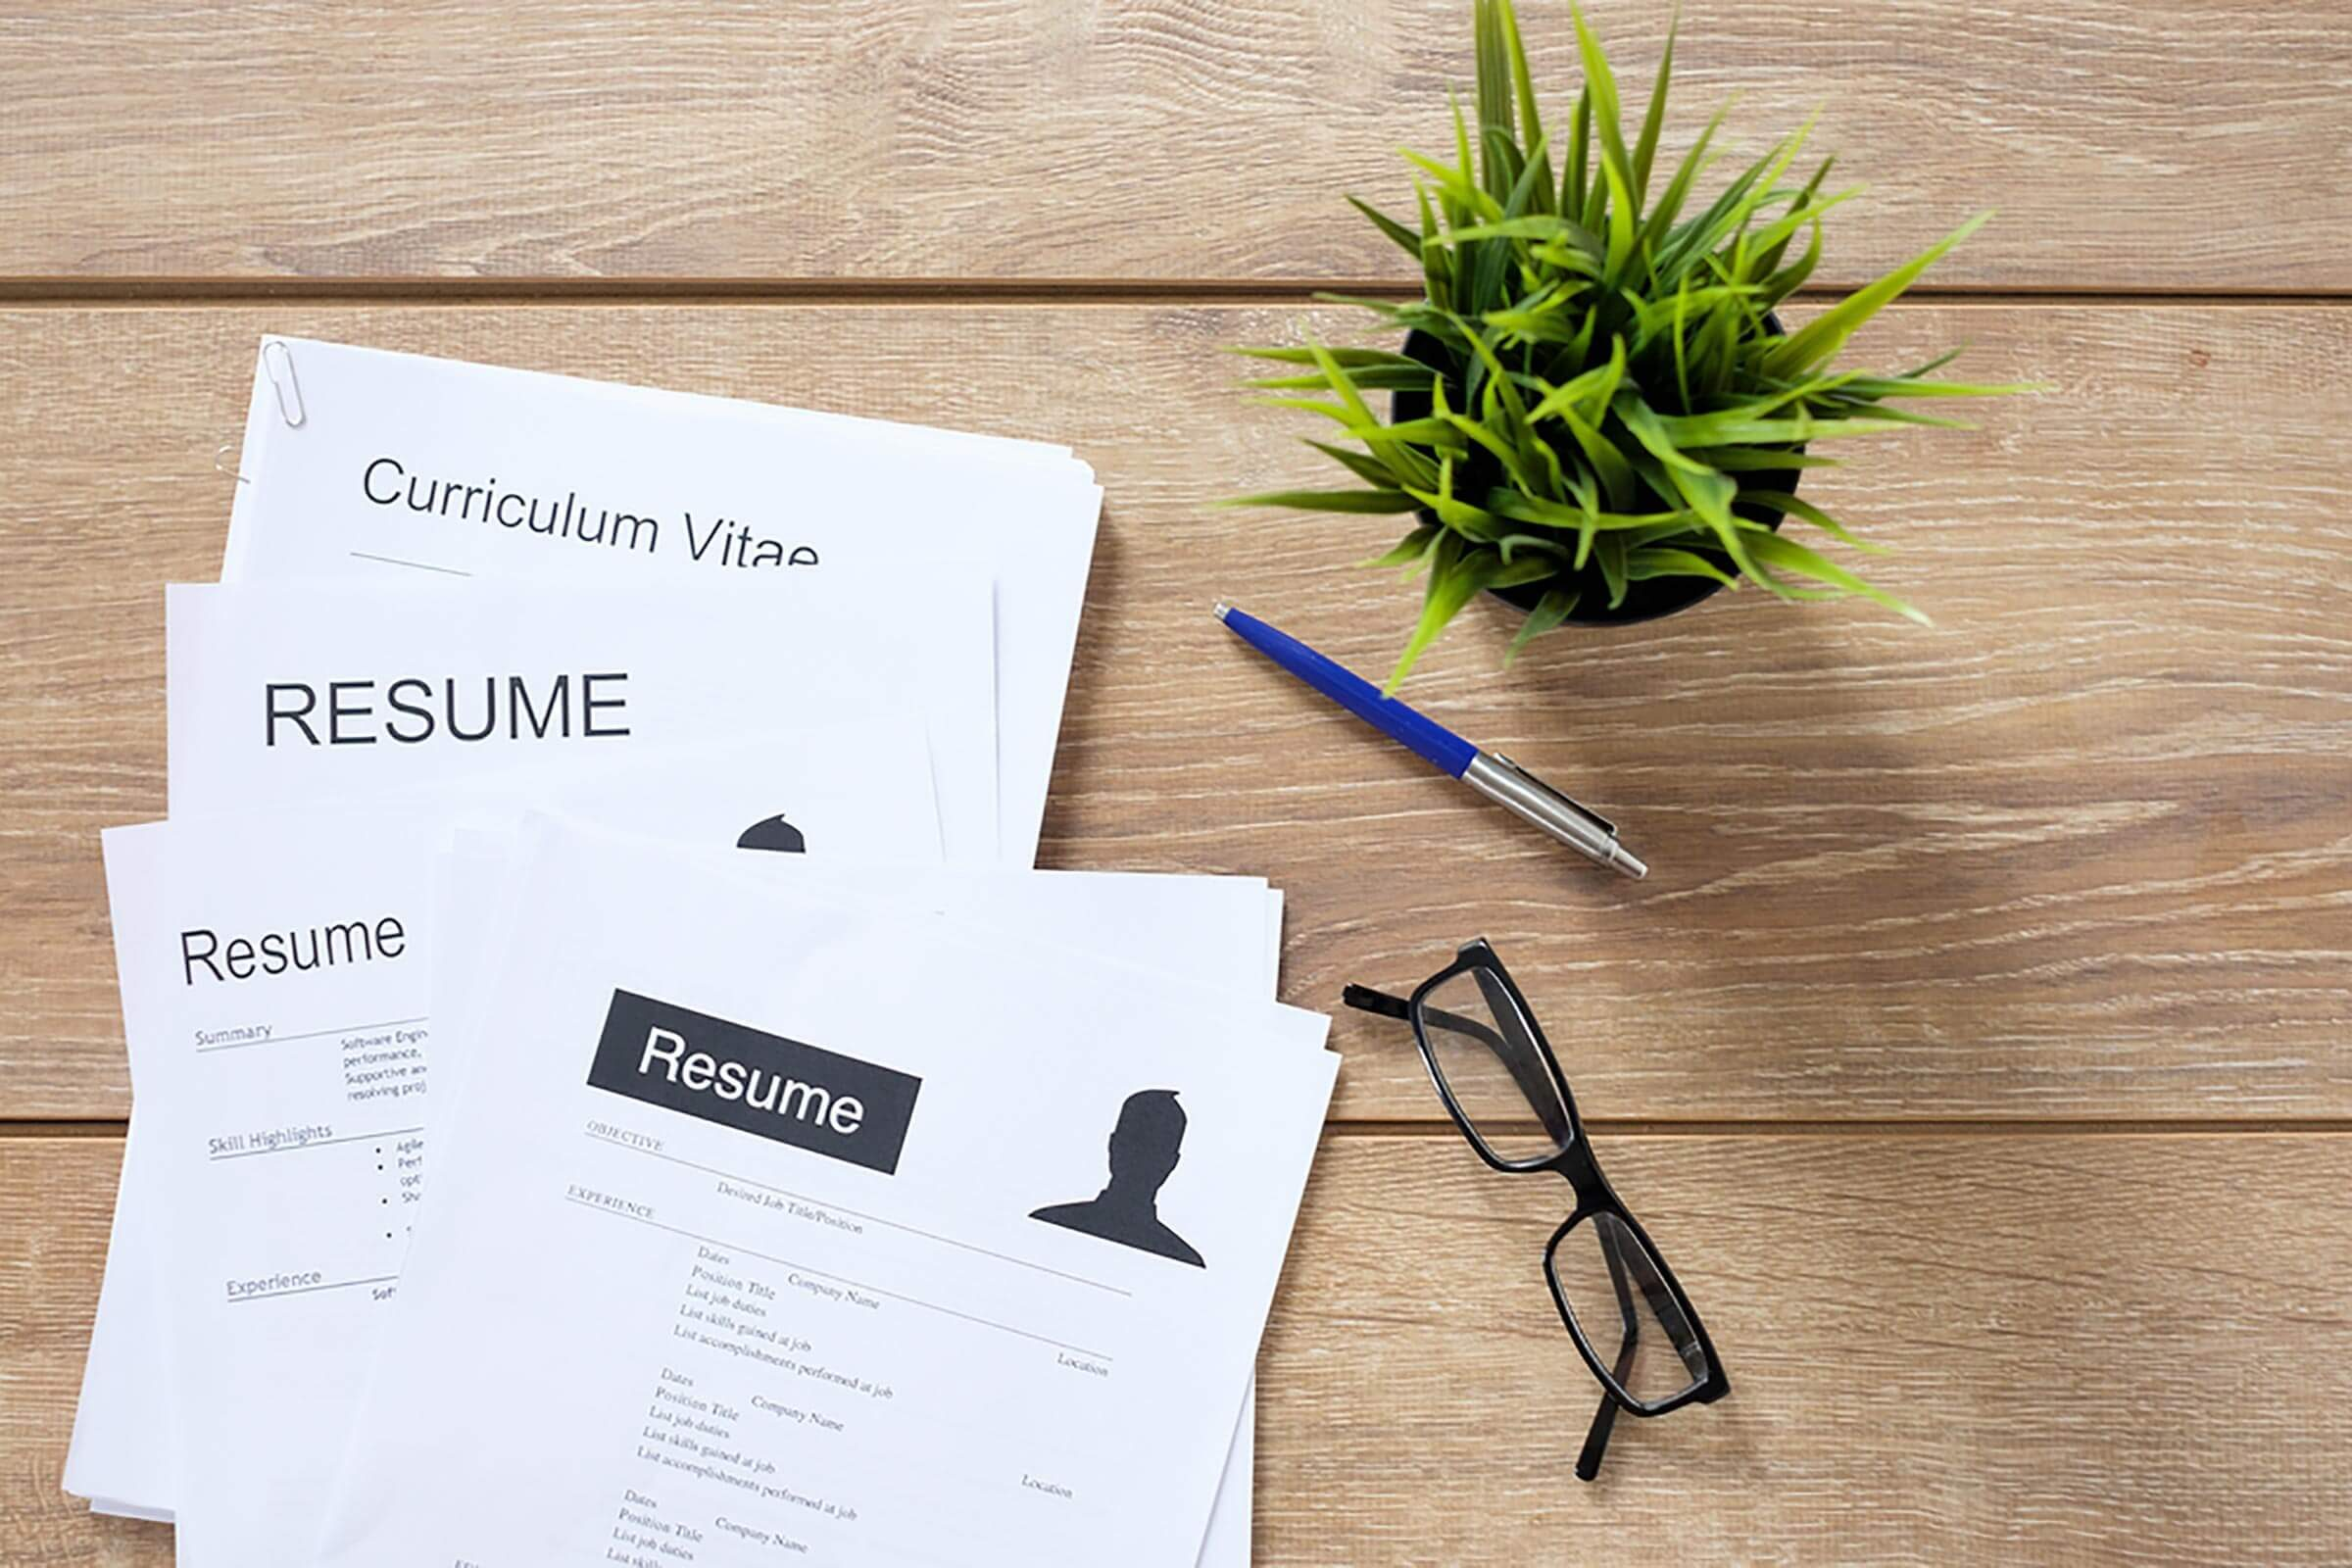 Resume Mistakes that Could Cost You the Job | Reader's Digest